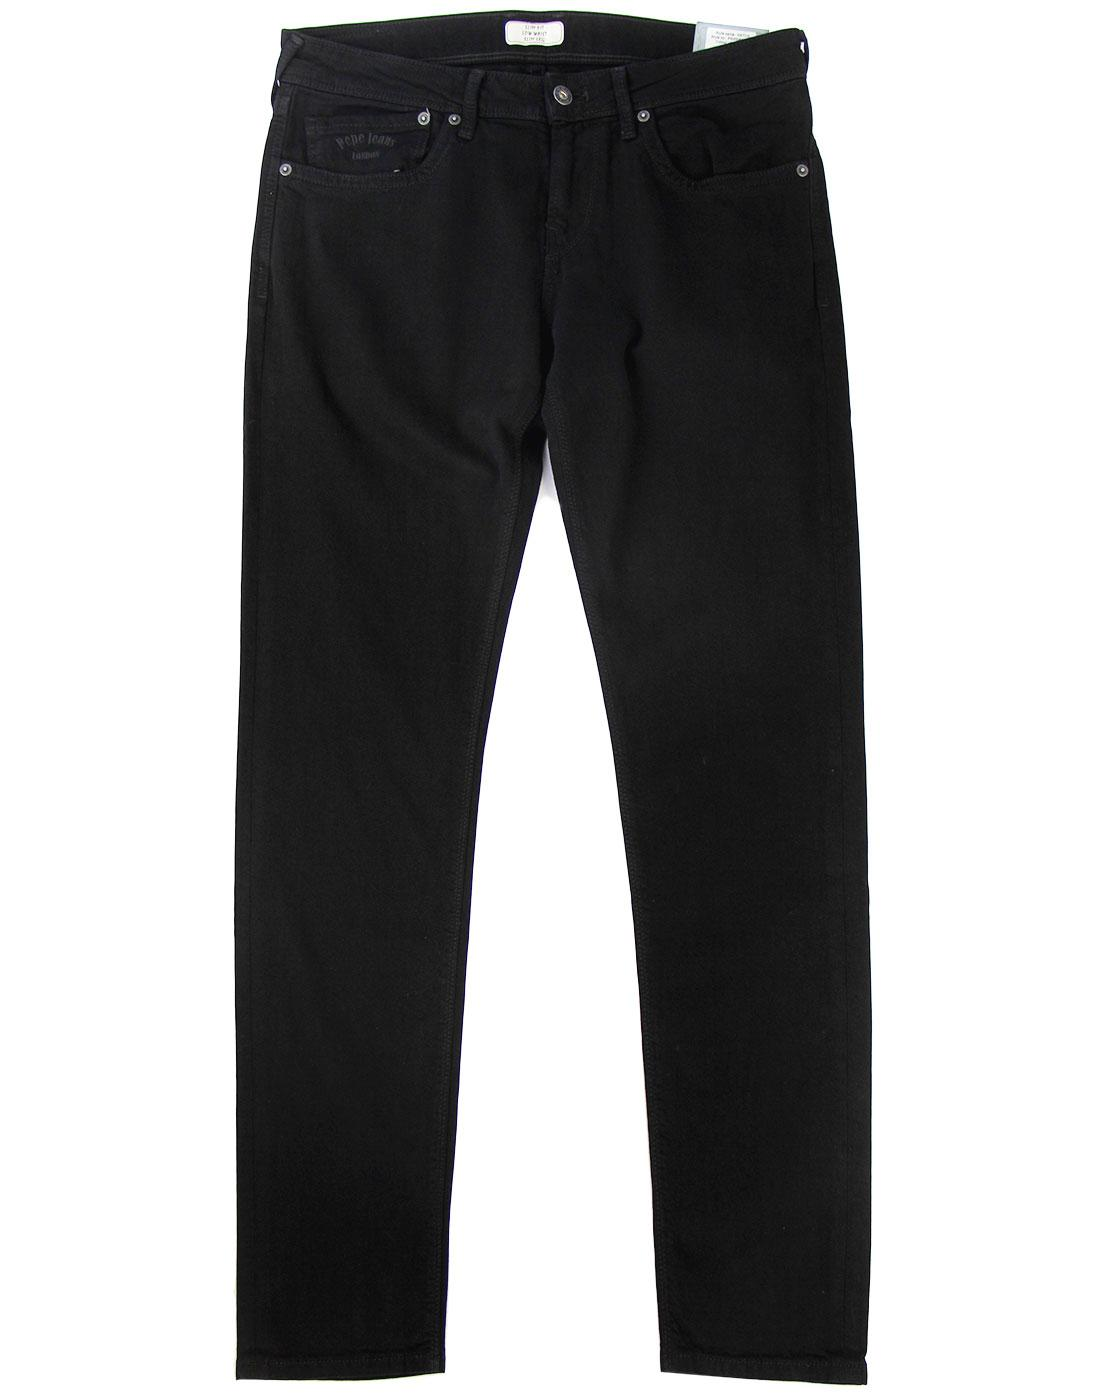 Hatch PEPE Retro Mod Slim Fit Black Denim Jeans